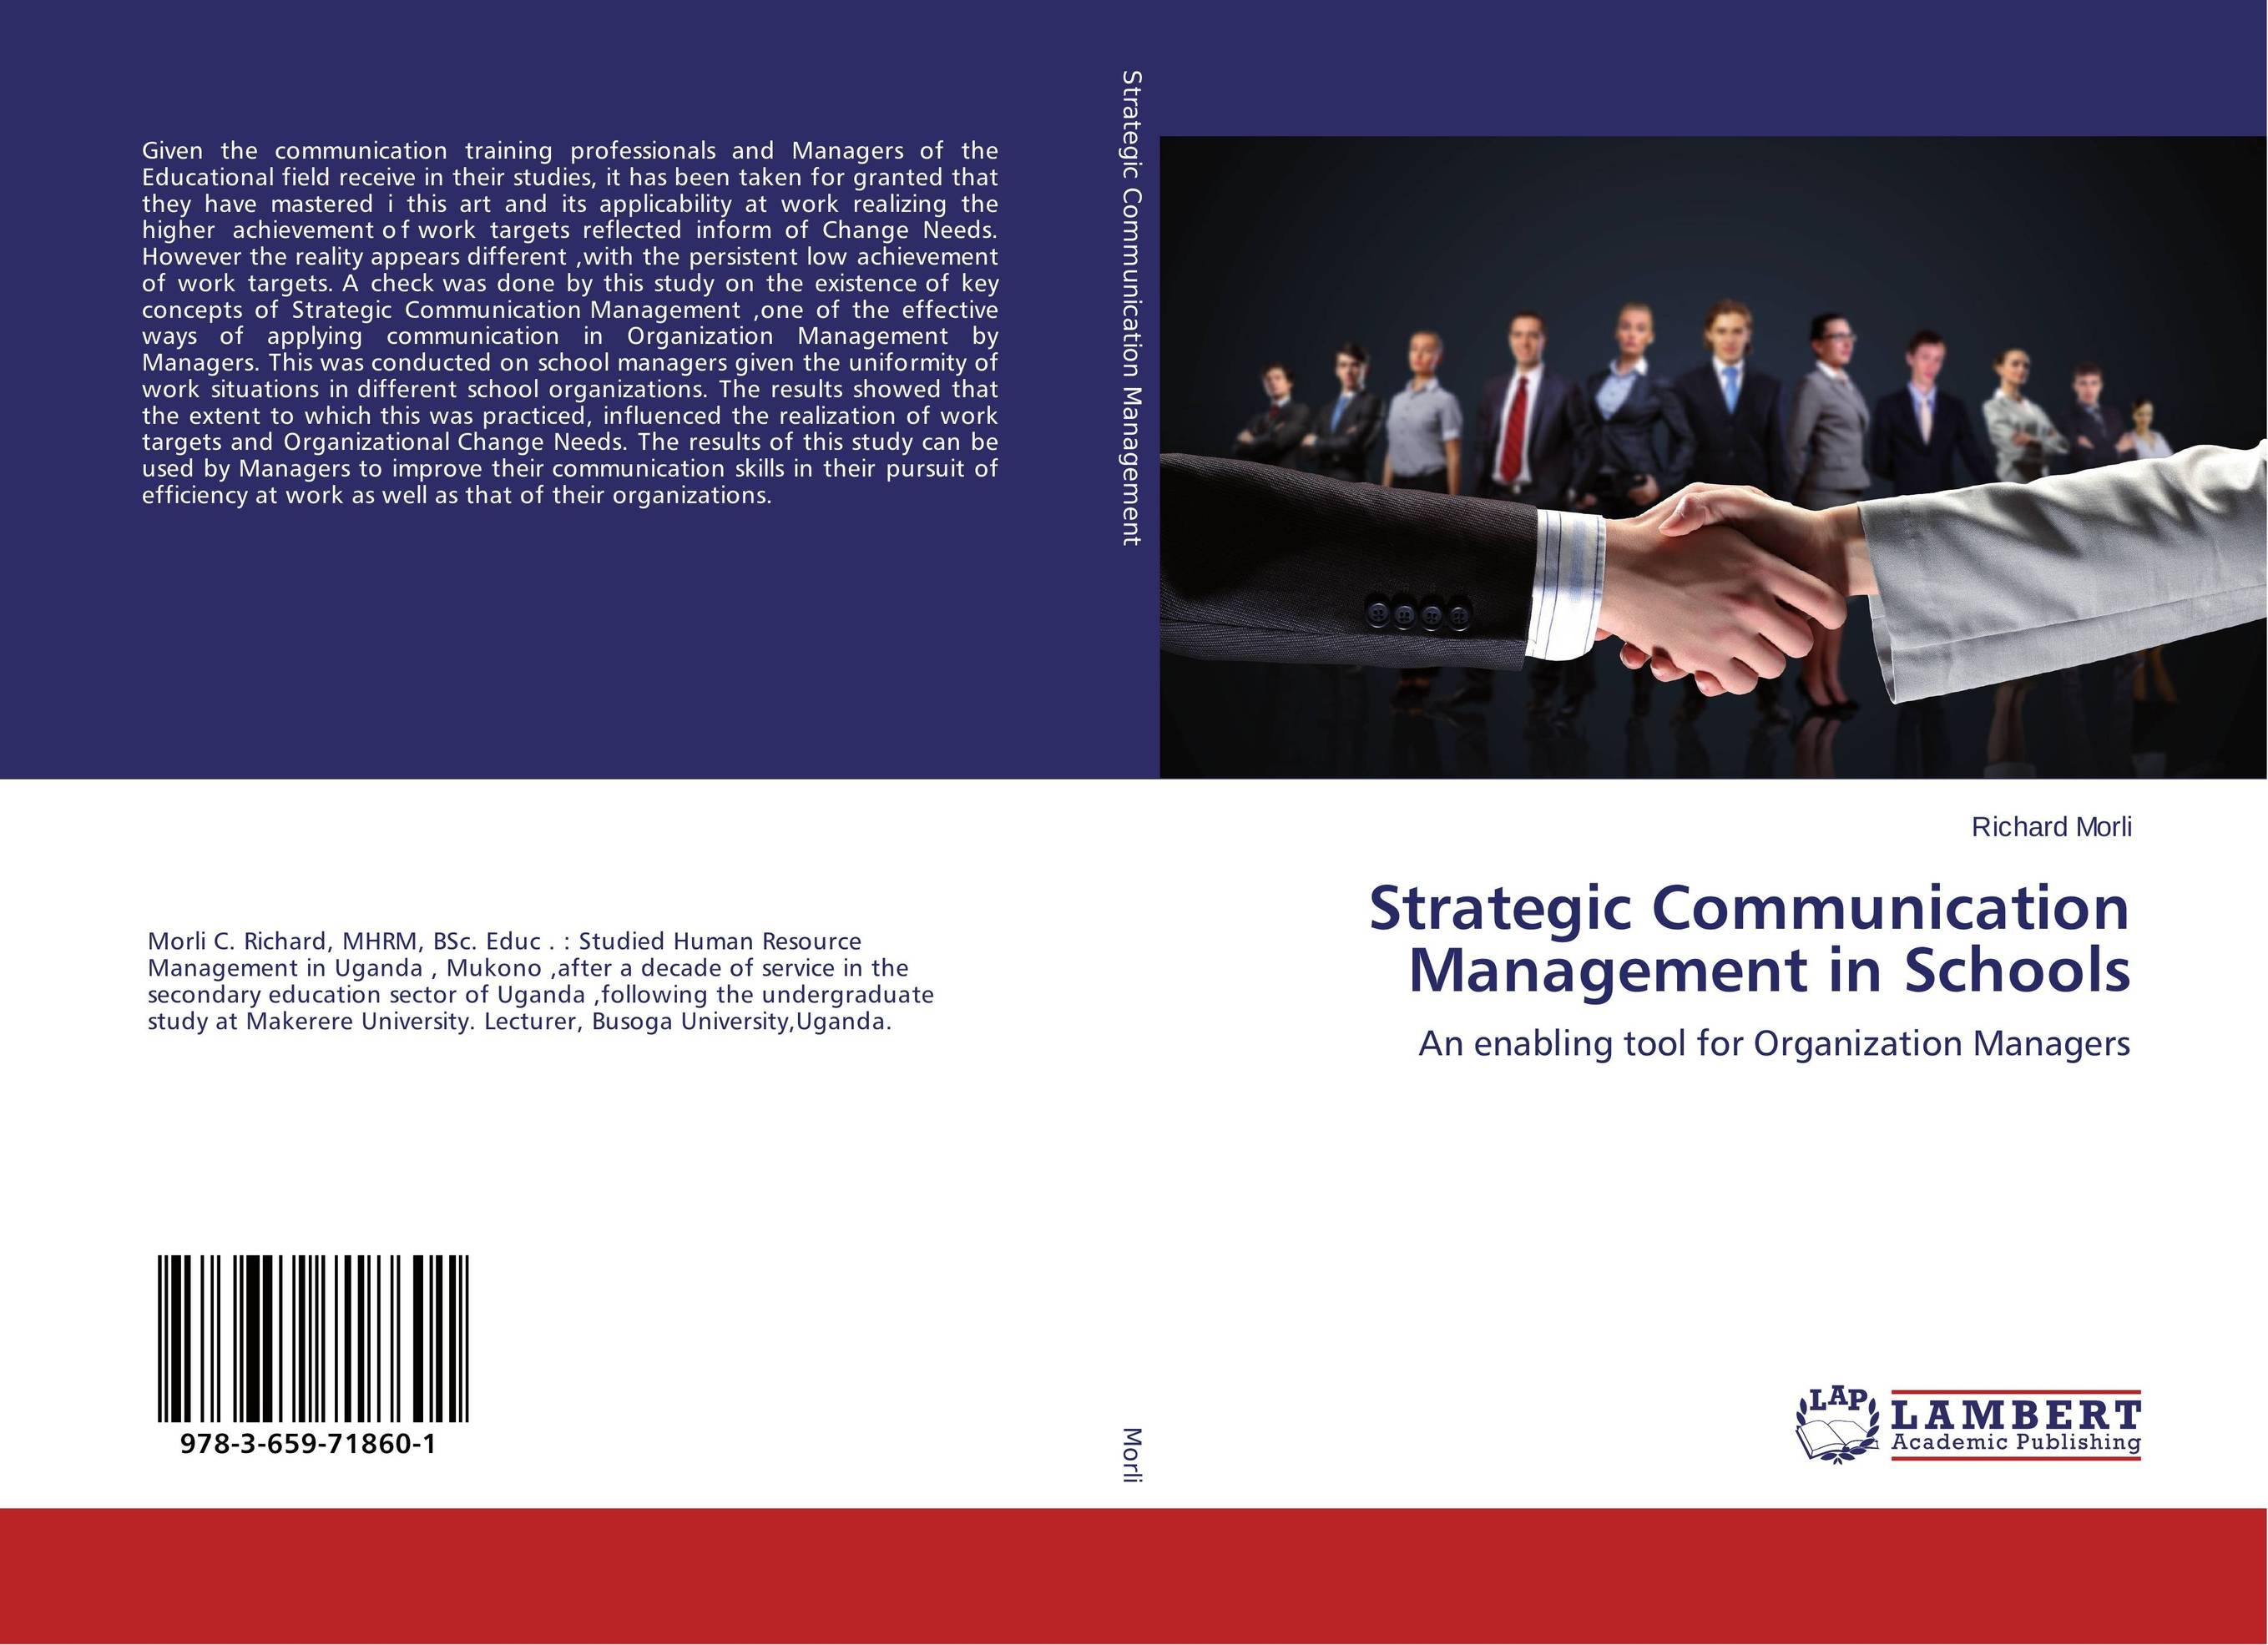 Strategic Communication Management in Schools